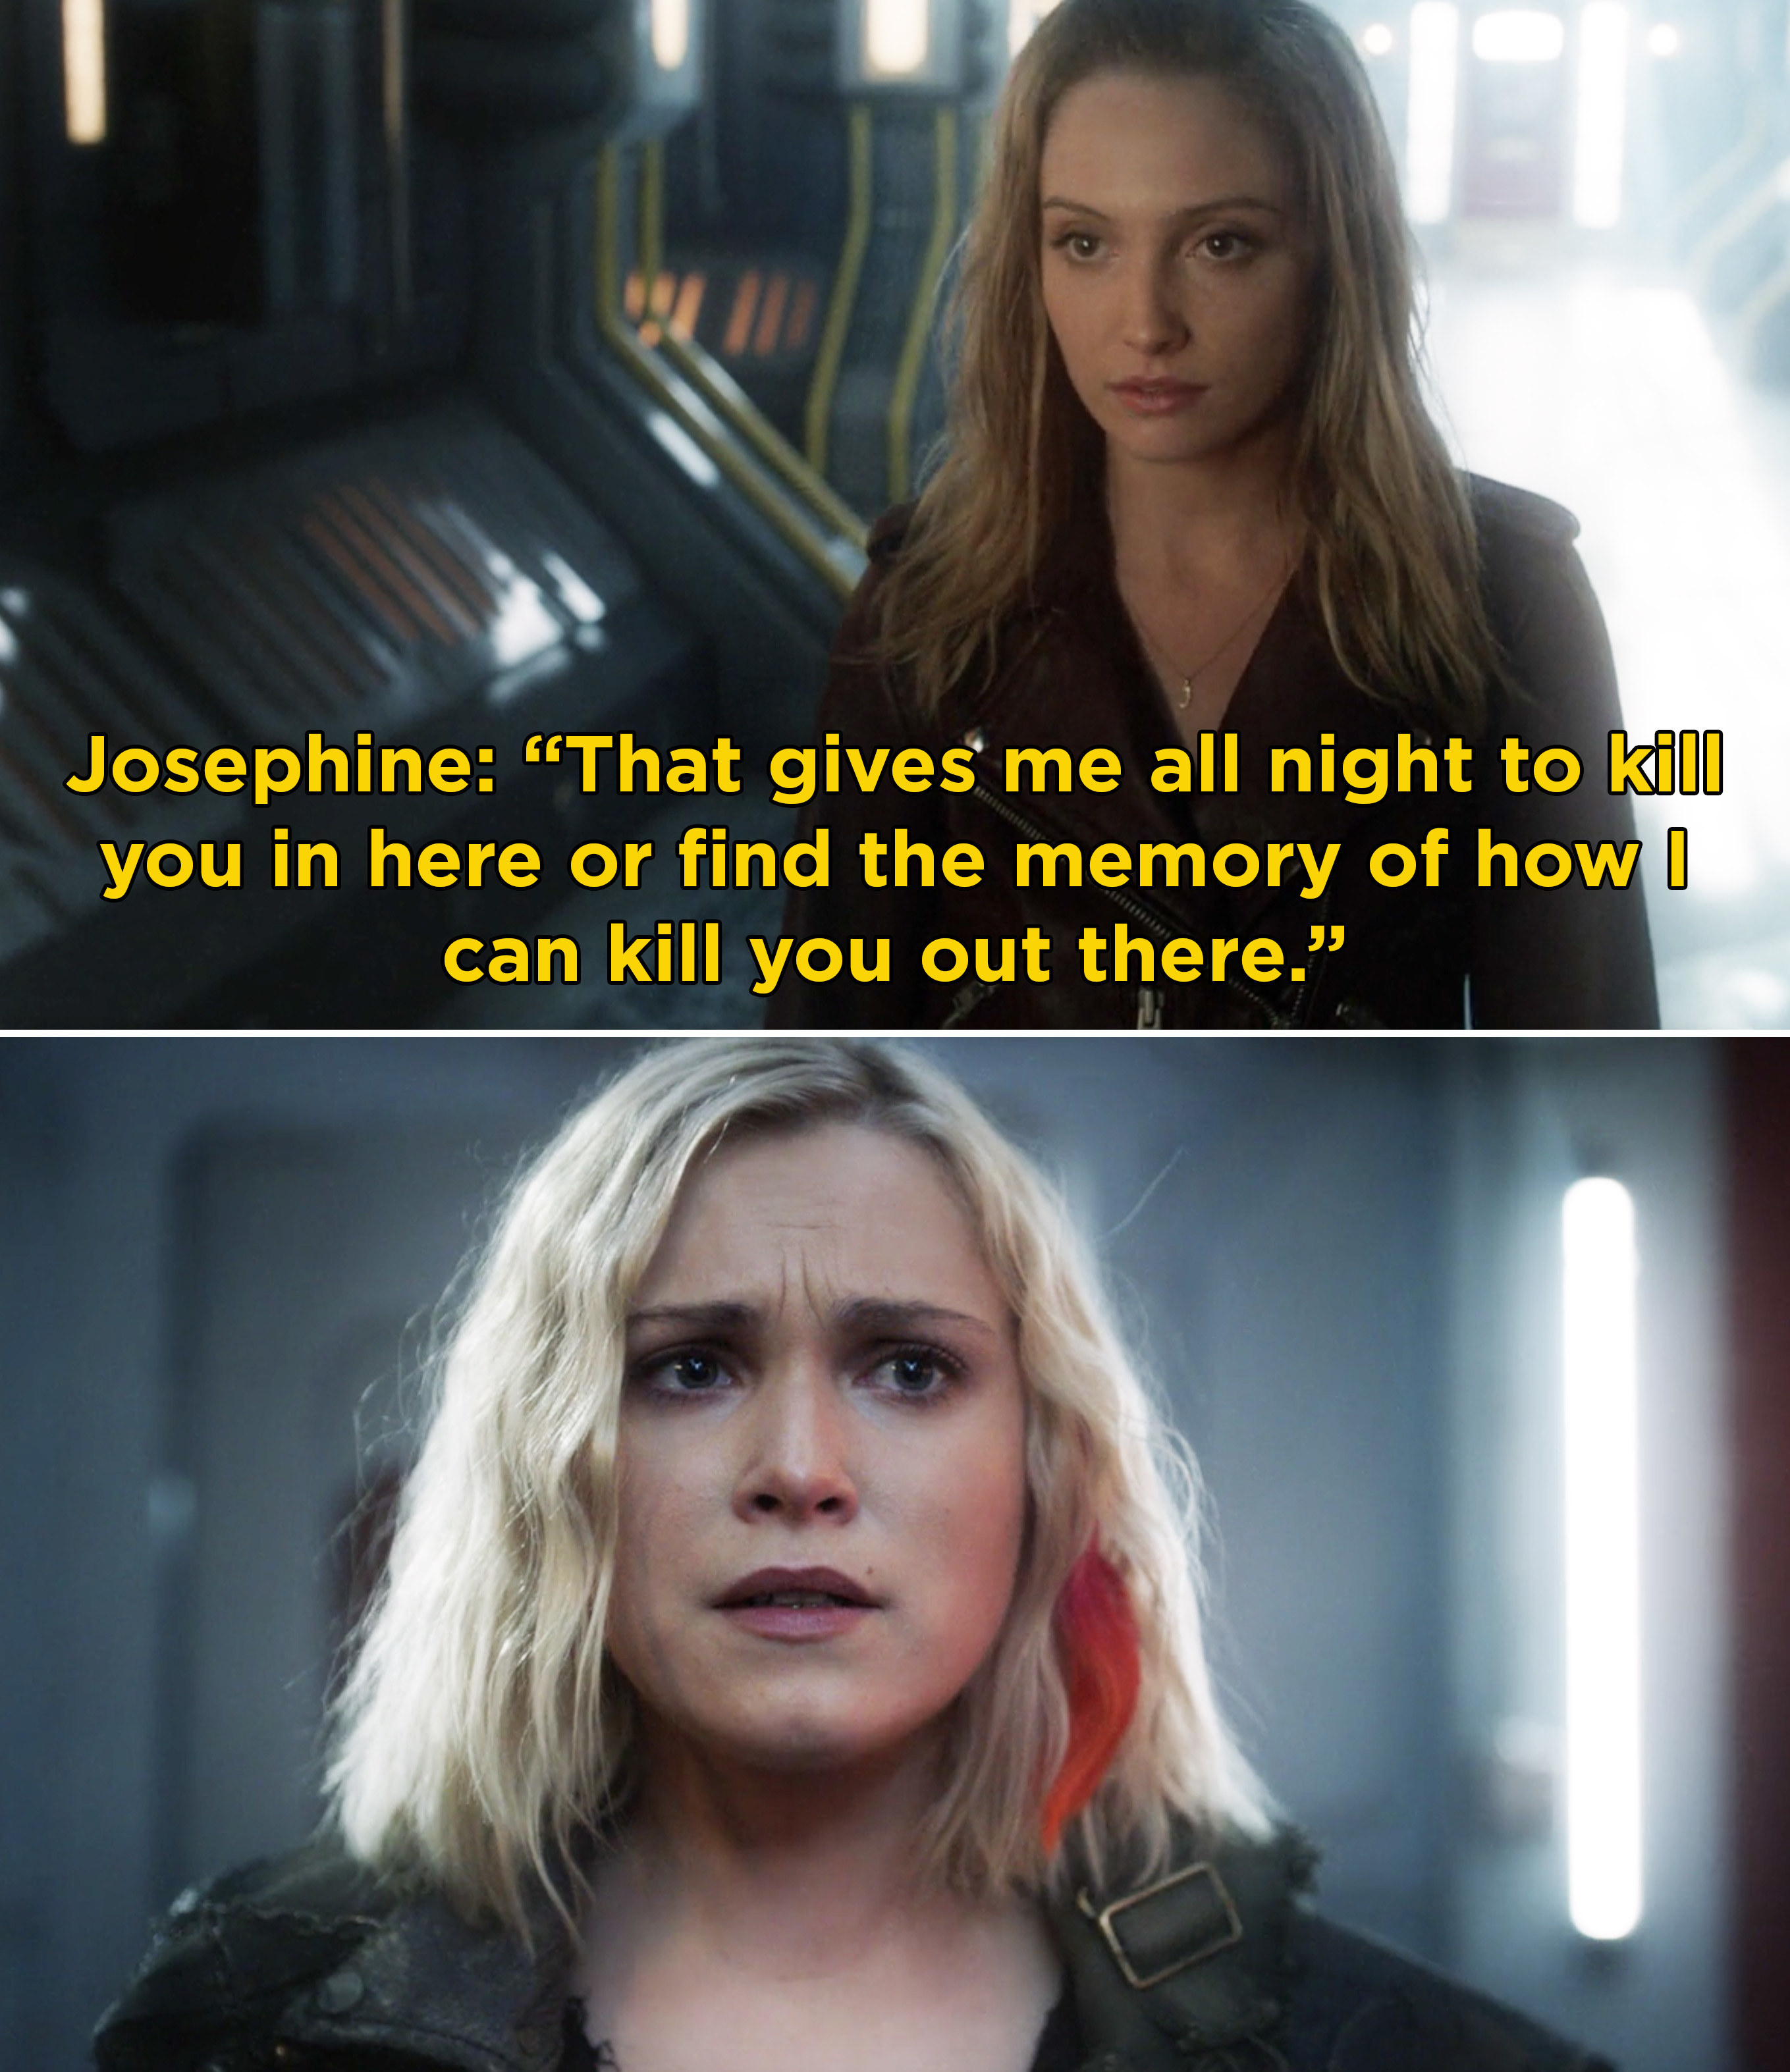 Josephine telling Clarke that she has all night to find a memory or kill her